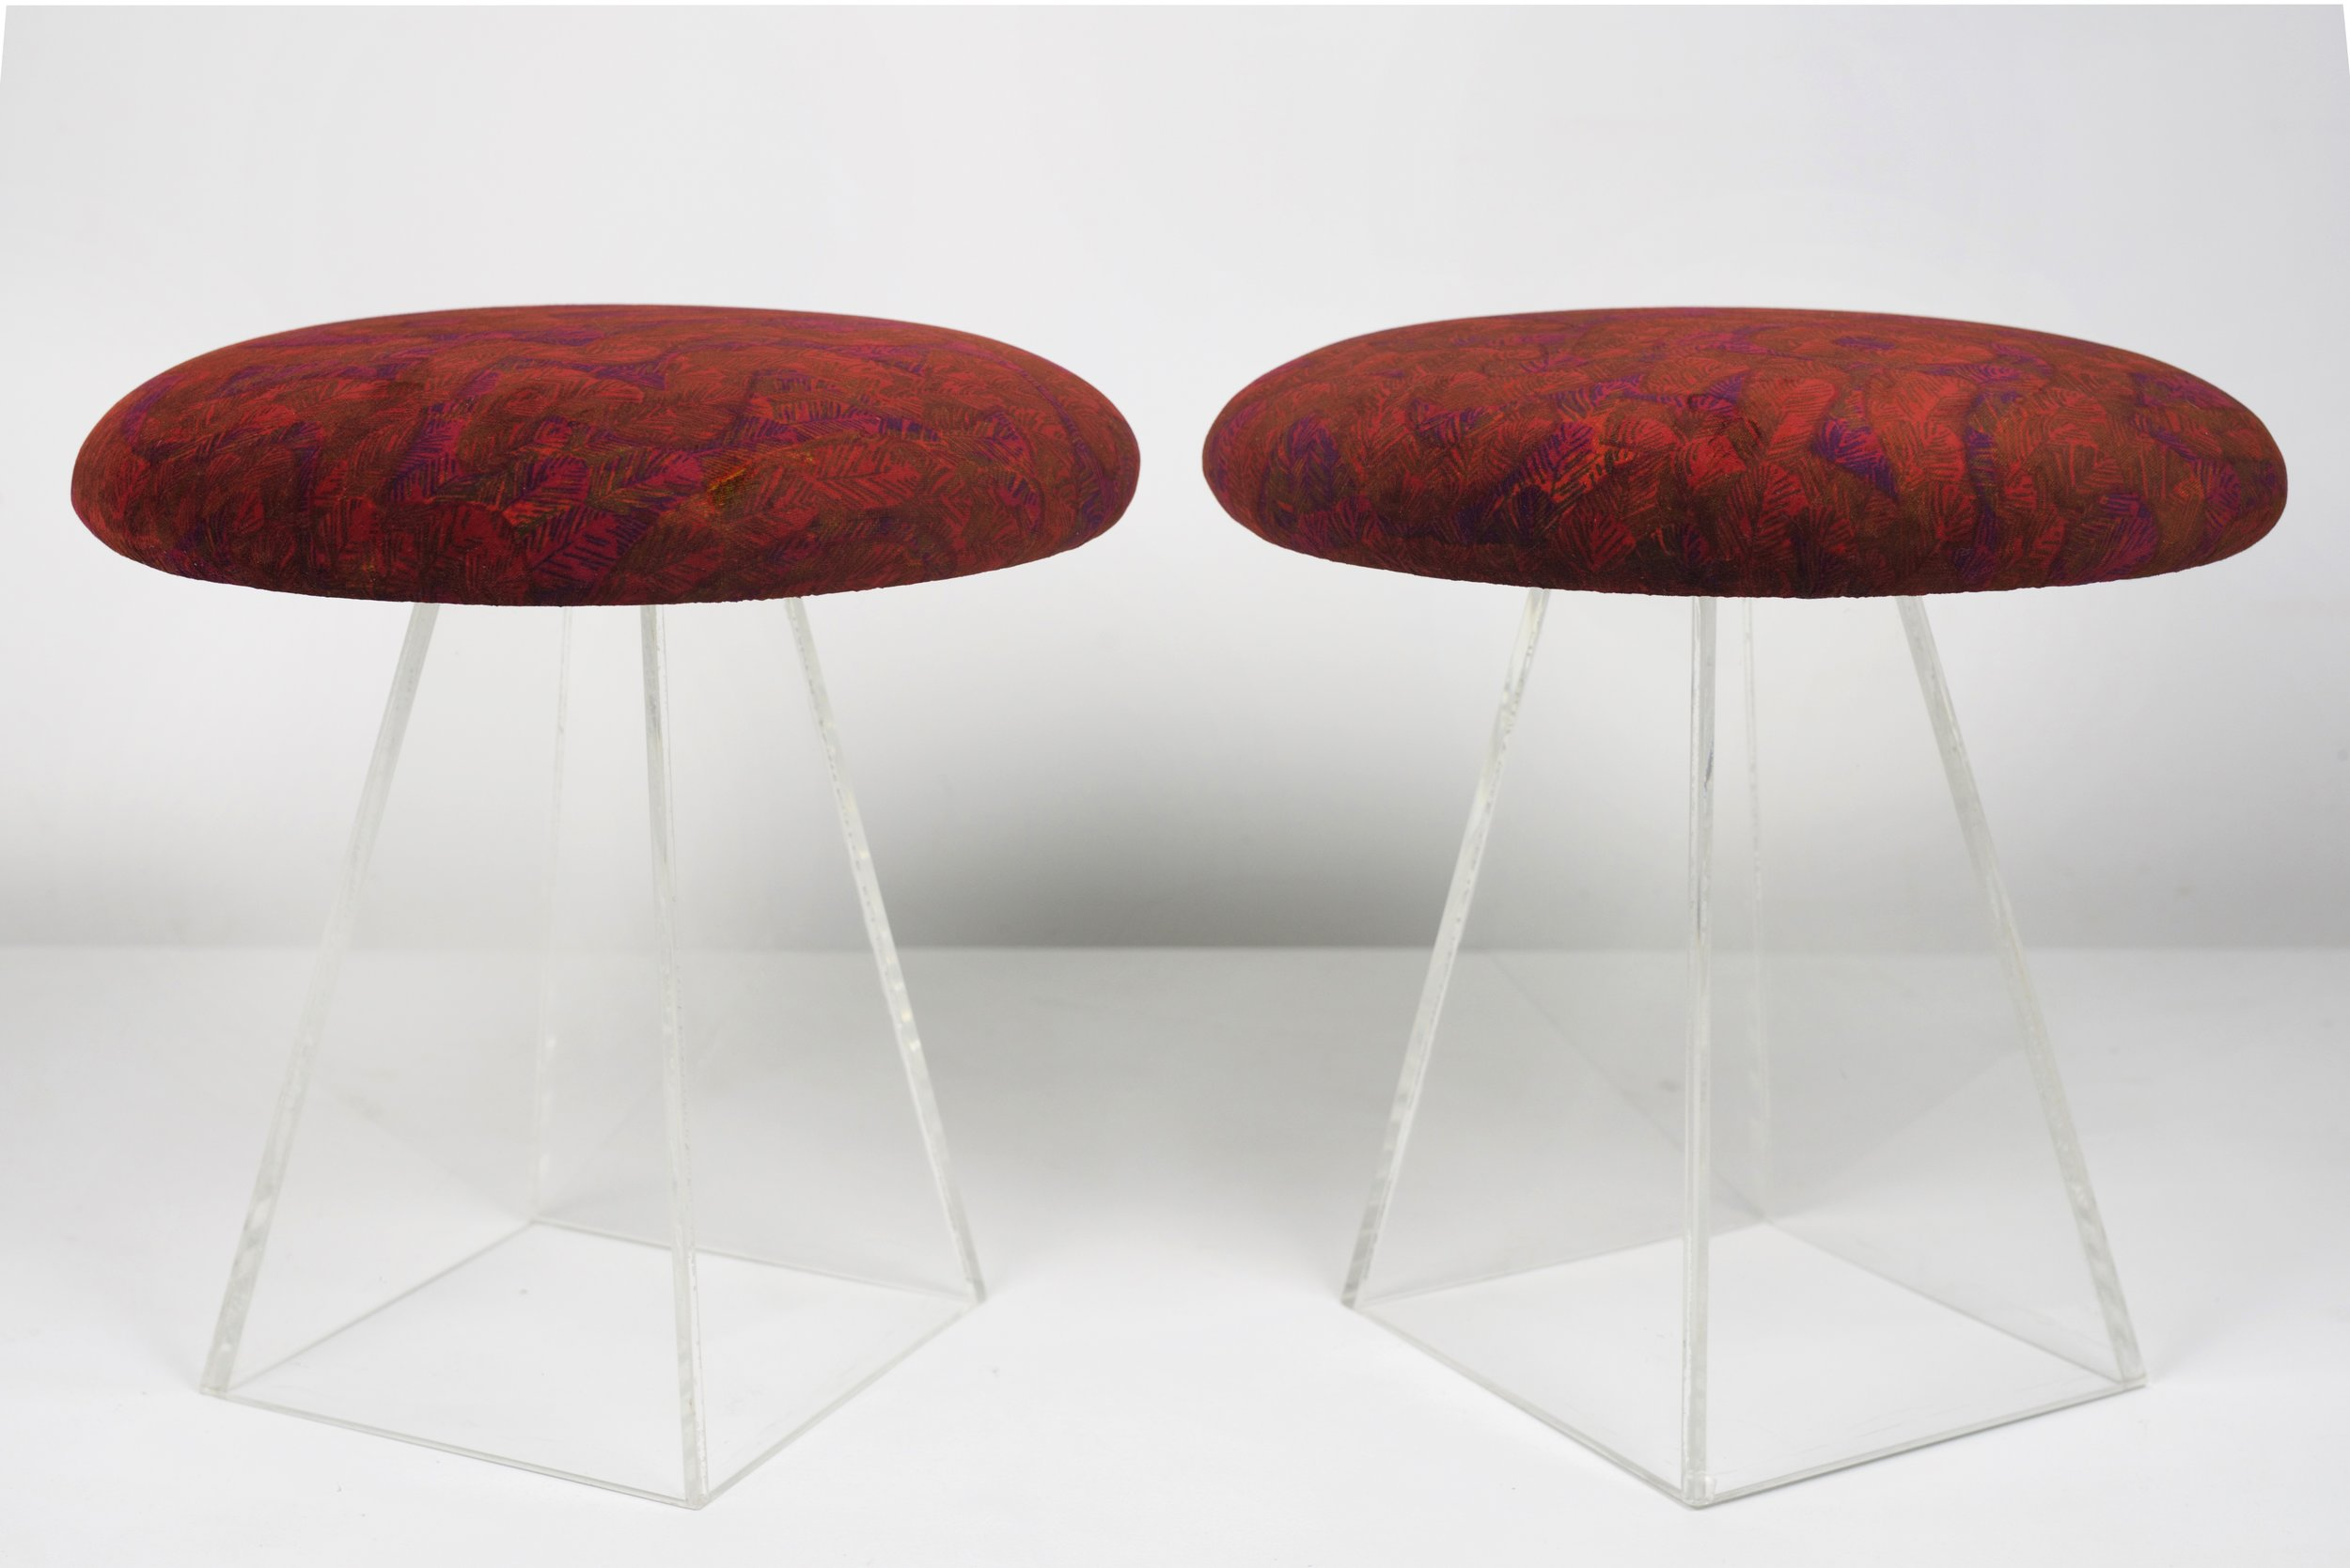 Click here for the 1950s Vladimir Kagan Stools in Jack Lenor Larsen Fabric